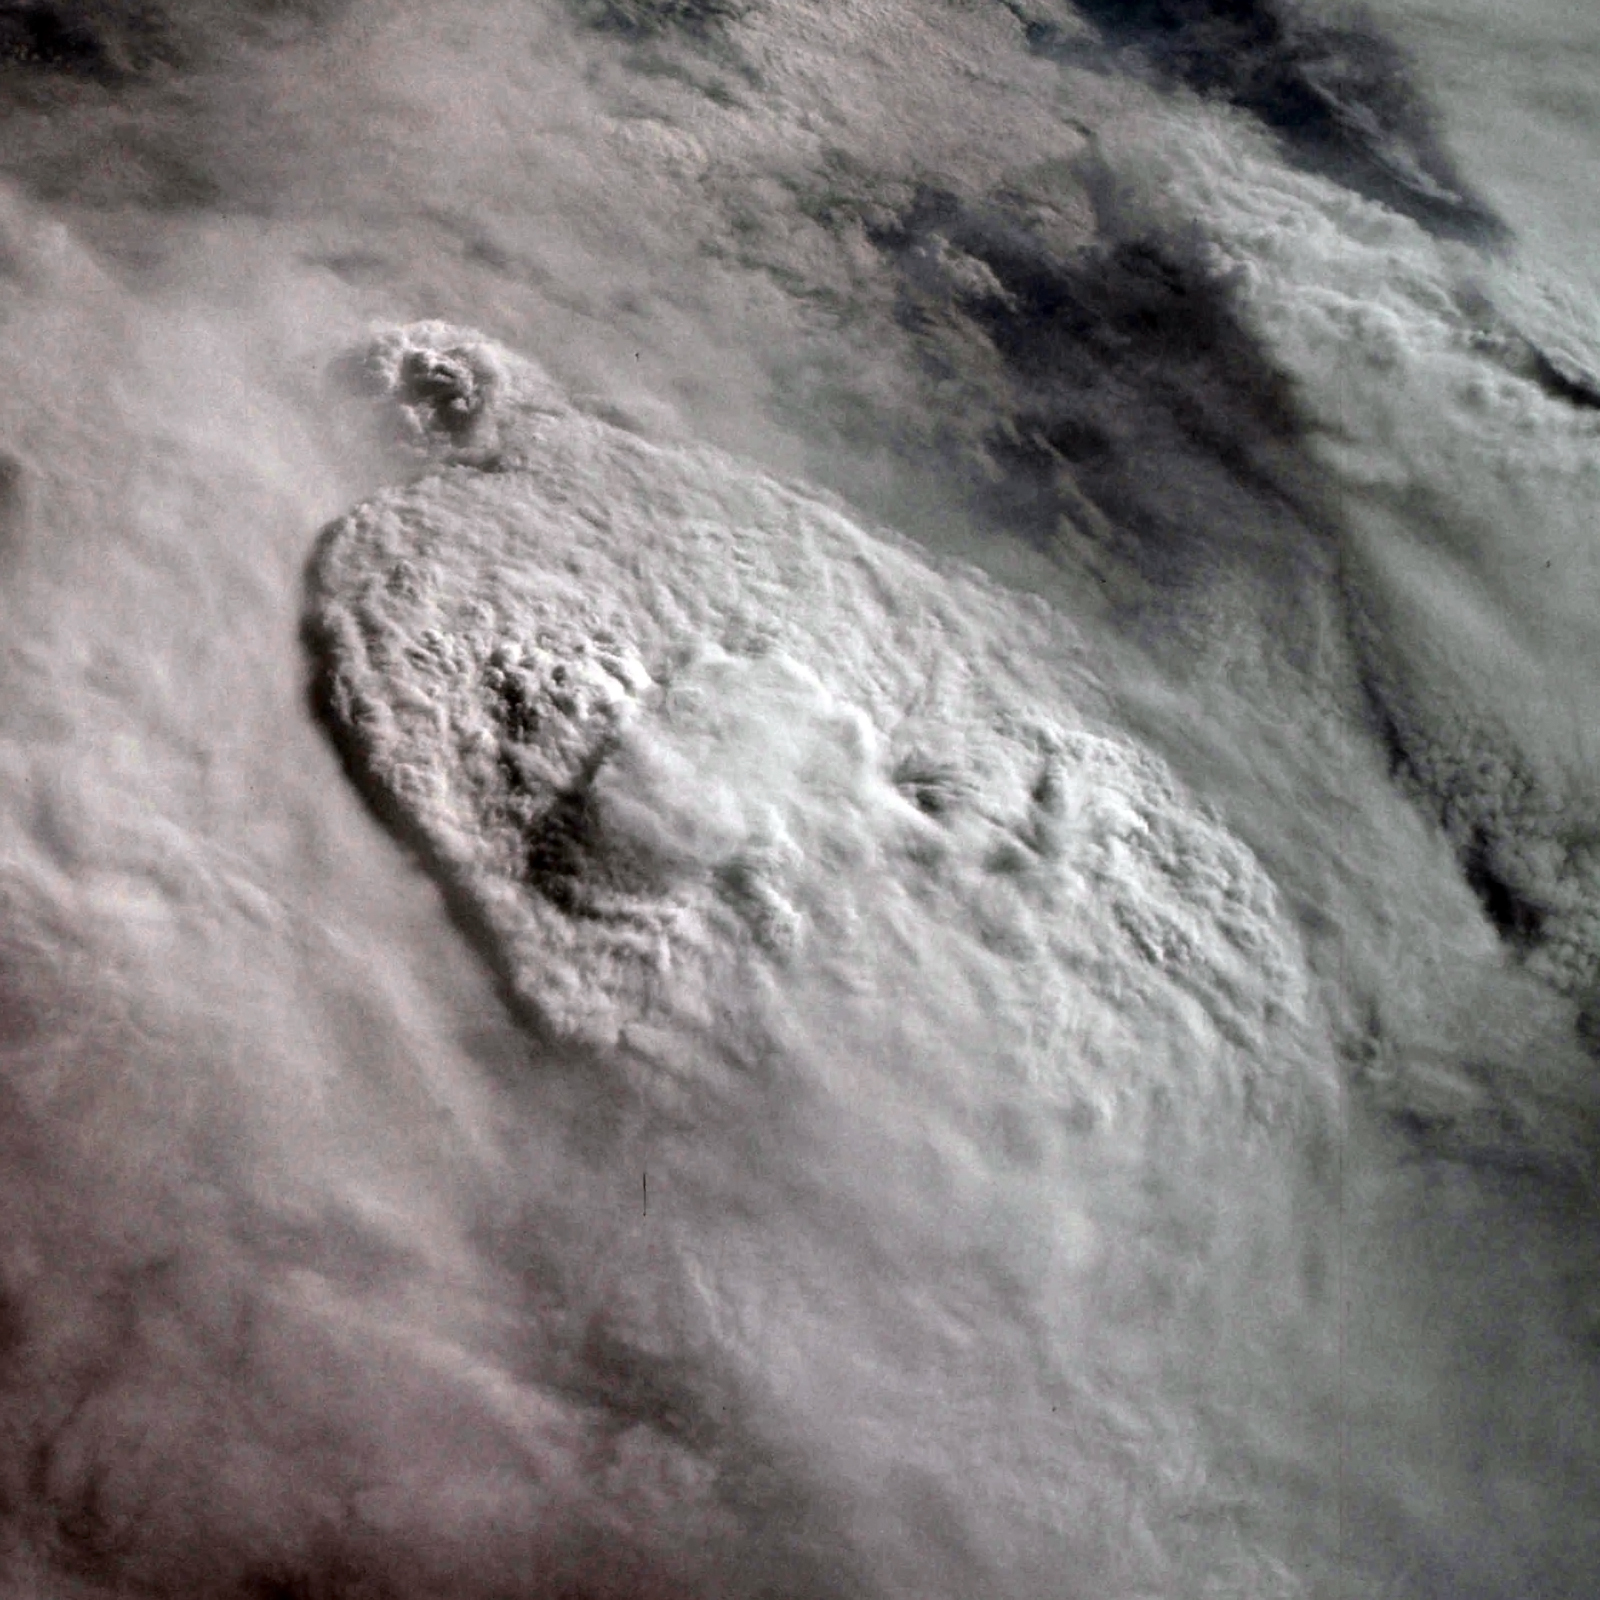 Storm with an above-anvil cirrus plume. Credit: NASA